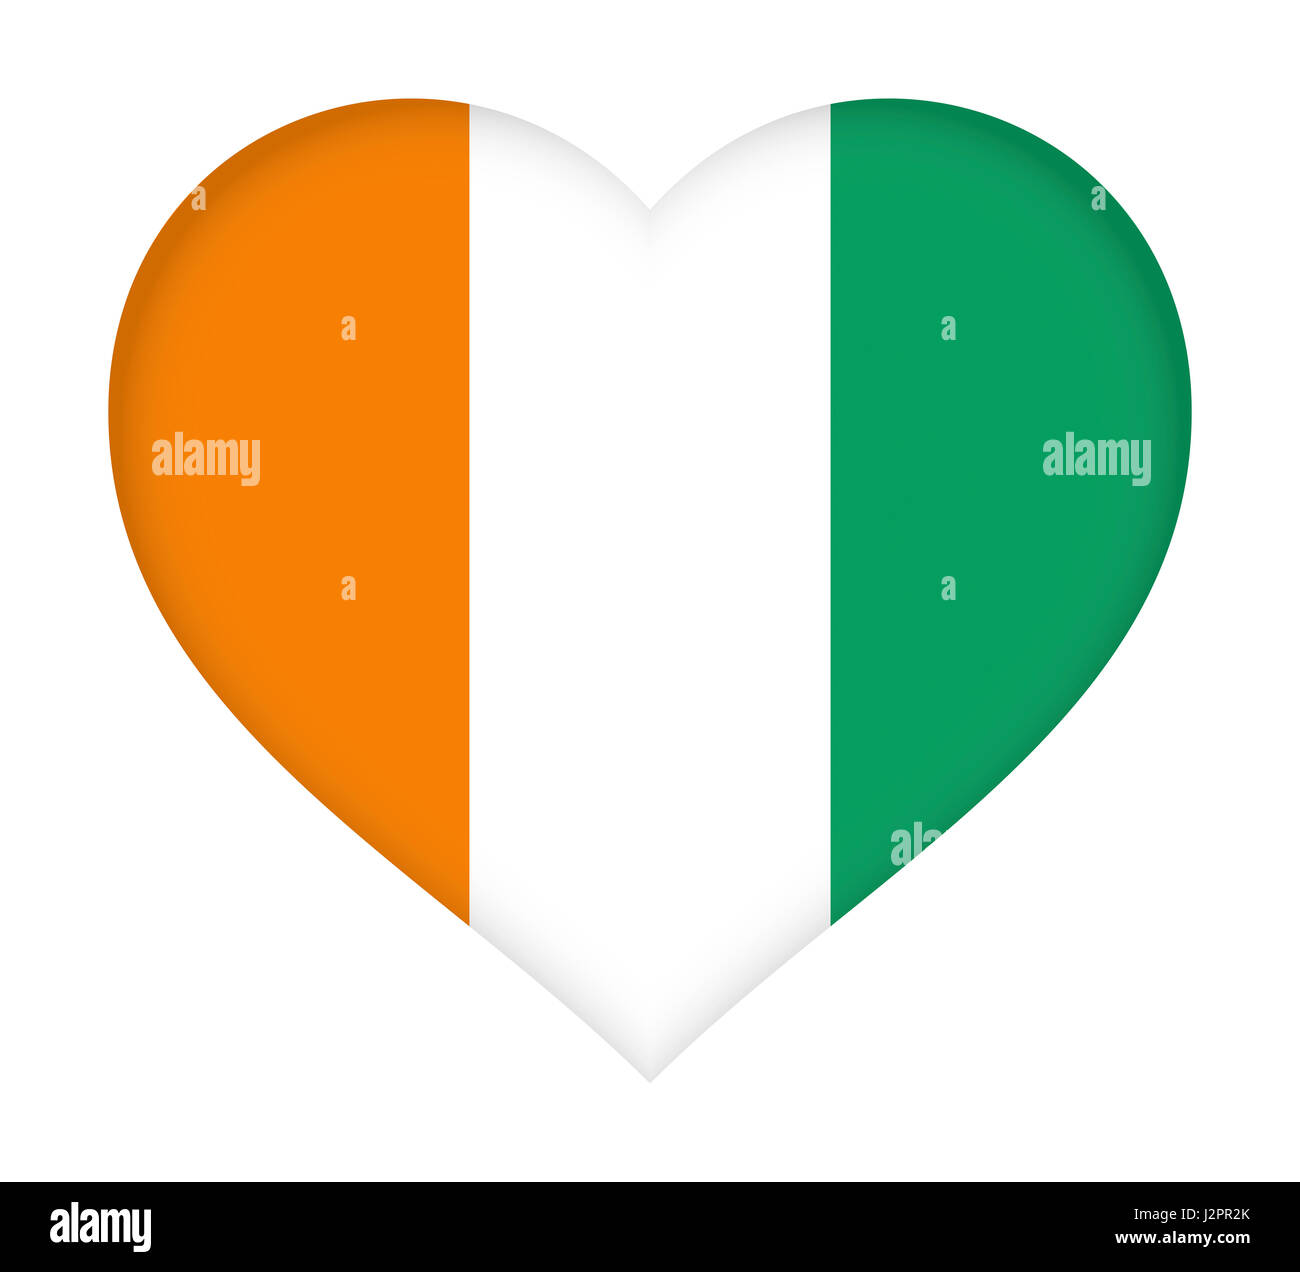 Illustration of the flag of Cote d'Ivoire shaped like a heart. - Stock Image